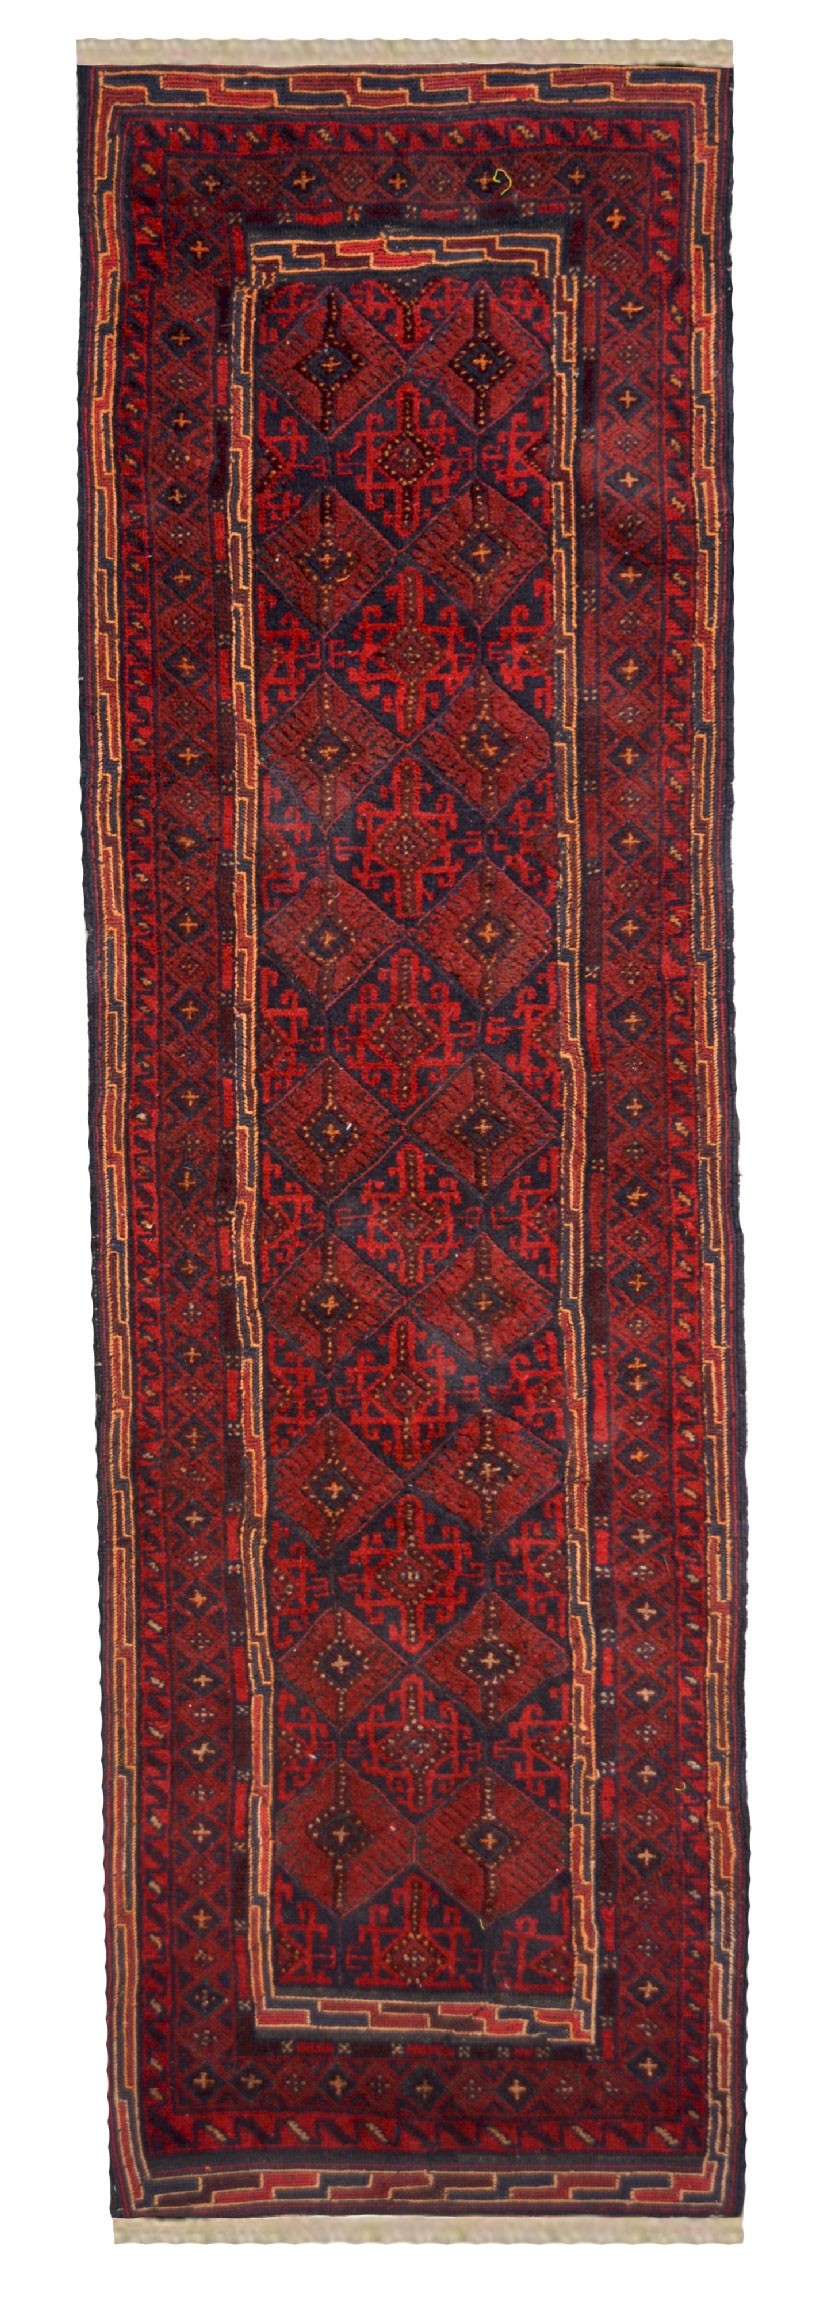 Handmade Khan Mohammadi Afghan Carpet Online To Buy